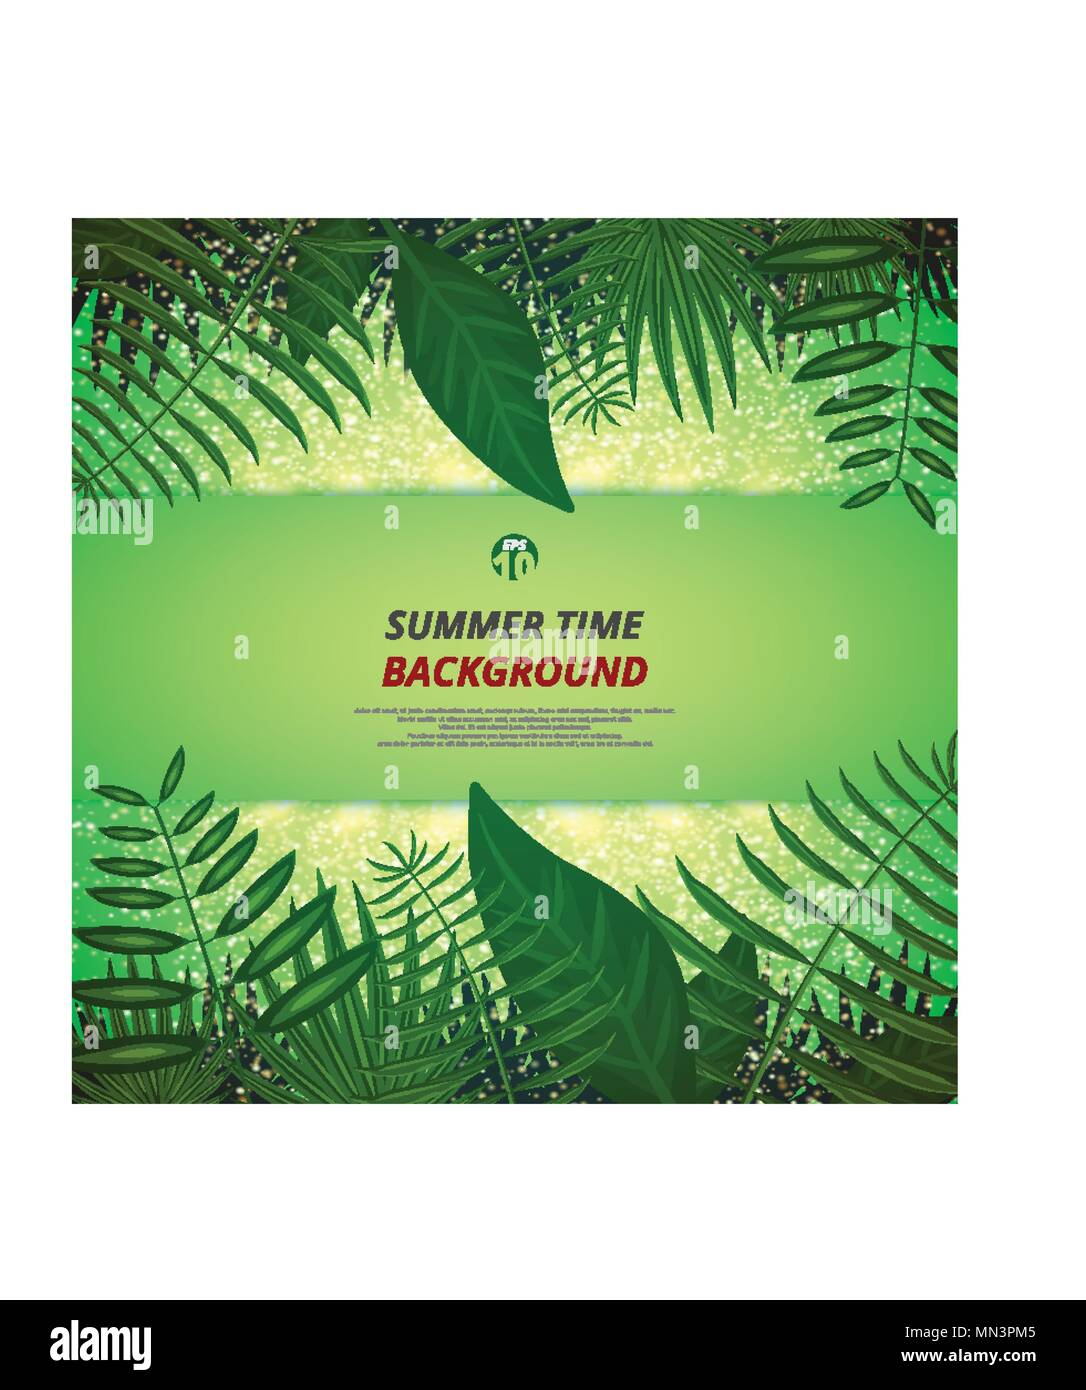 Abstract of summer time background with leaves and golden light background, Illustration vector eps10 - Stock Image